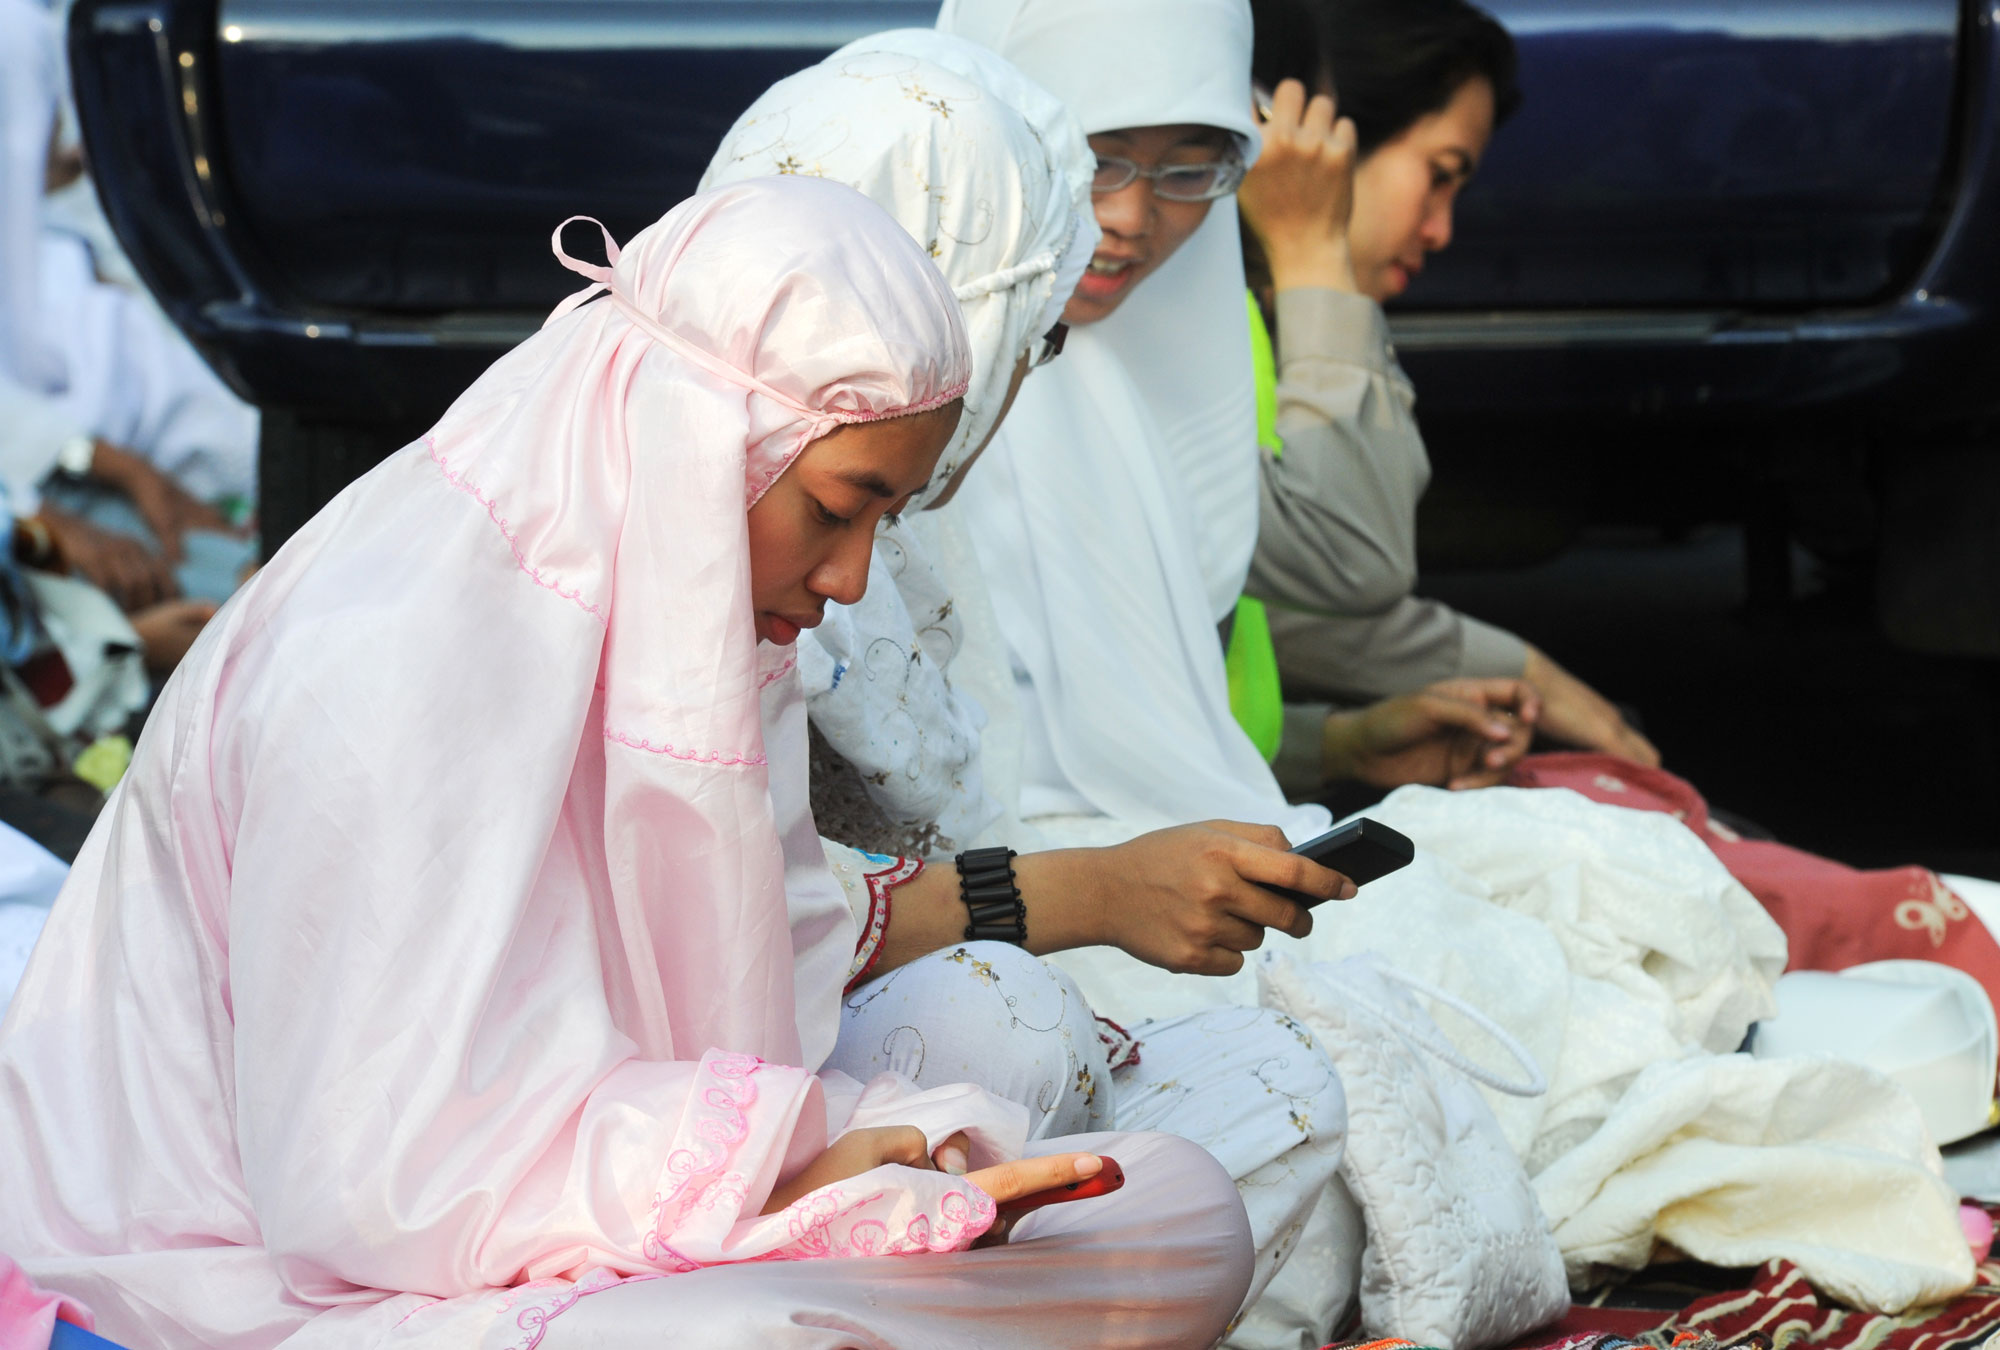 Women in hijab text on their cellphones in Indonesia